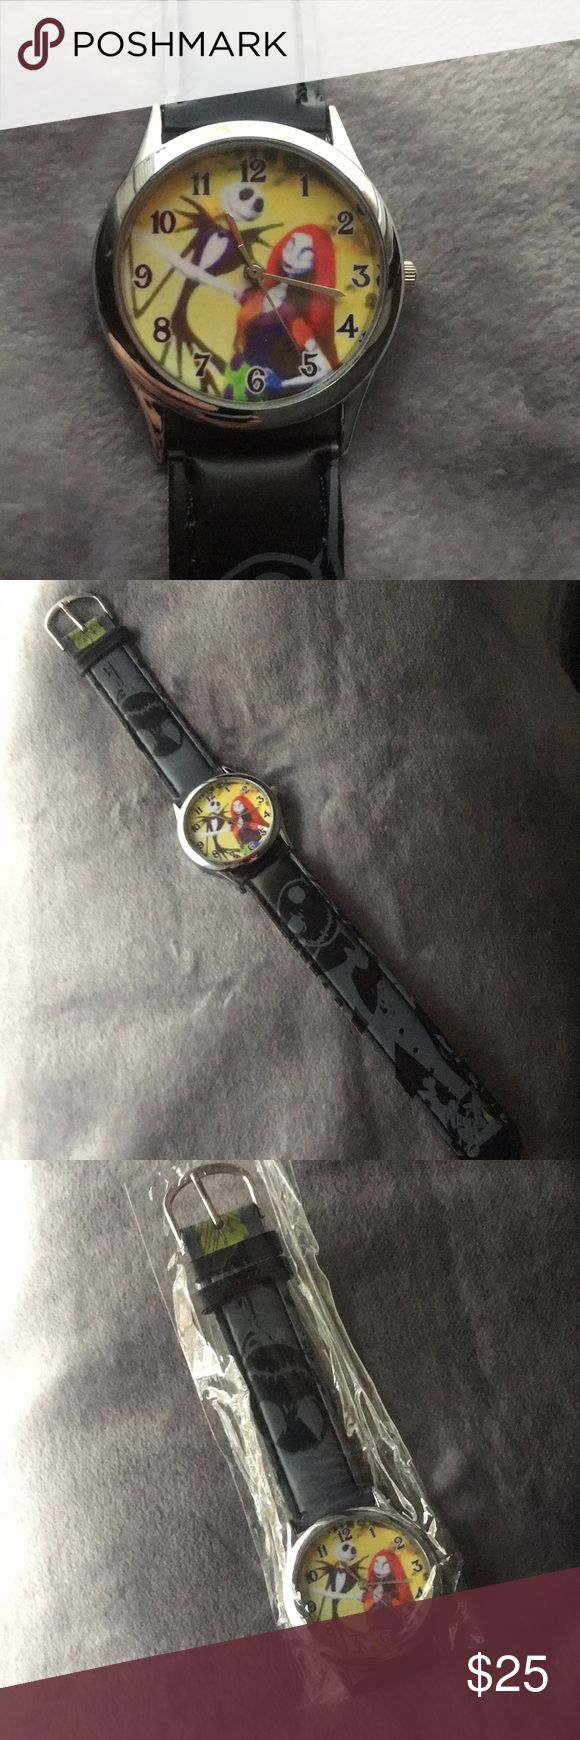 🎄 Nightmare Before Christmas Watch Nightmare Before Christmas, Jack Skellington & Sally watch. Super cute, unique band. Fits small to x-large wrist. Unisex, BRAND NEW in package! (Battery included) Nightmare Before Christmas Accessories Watches